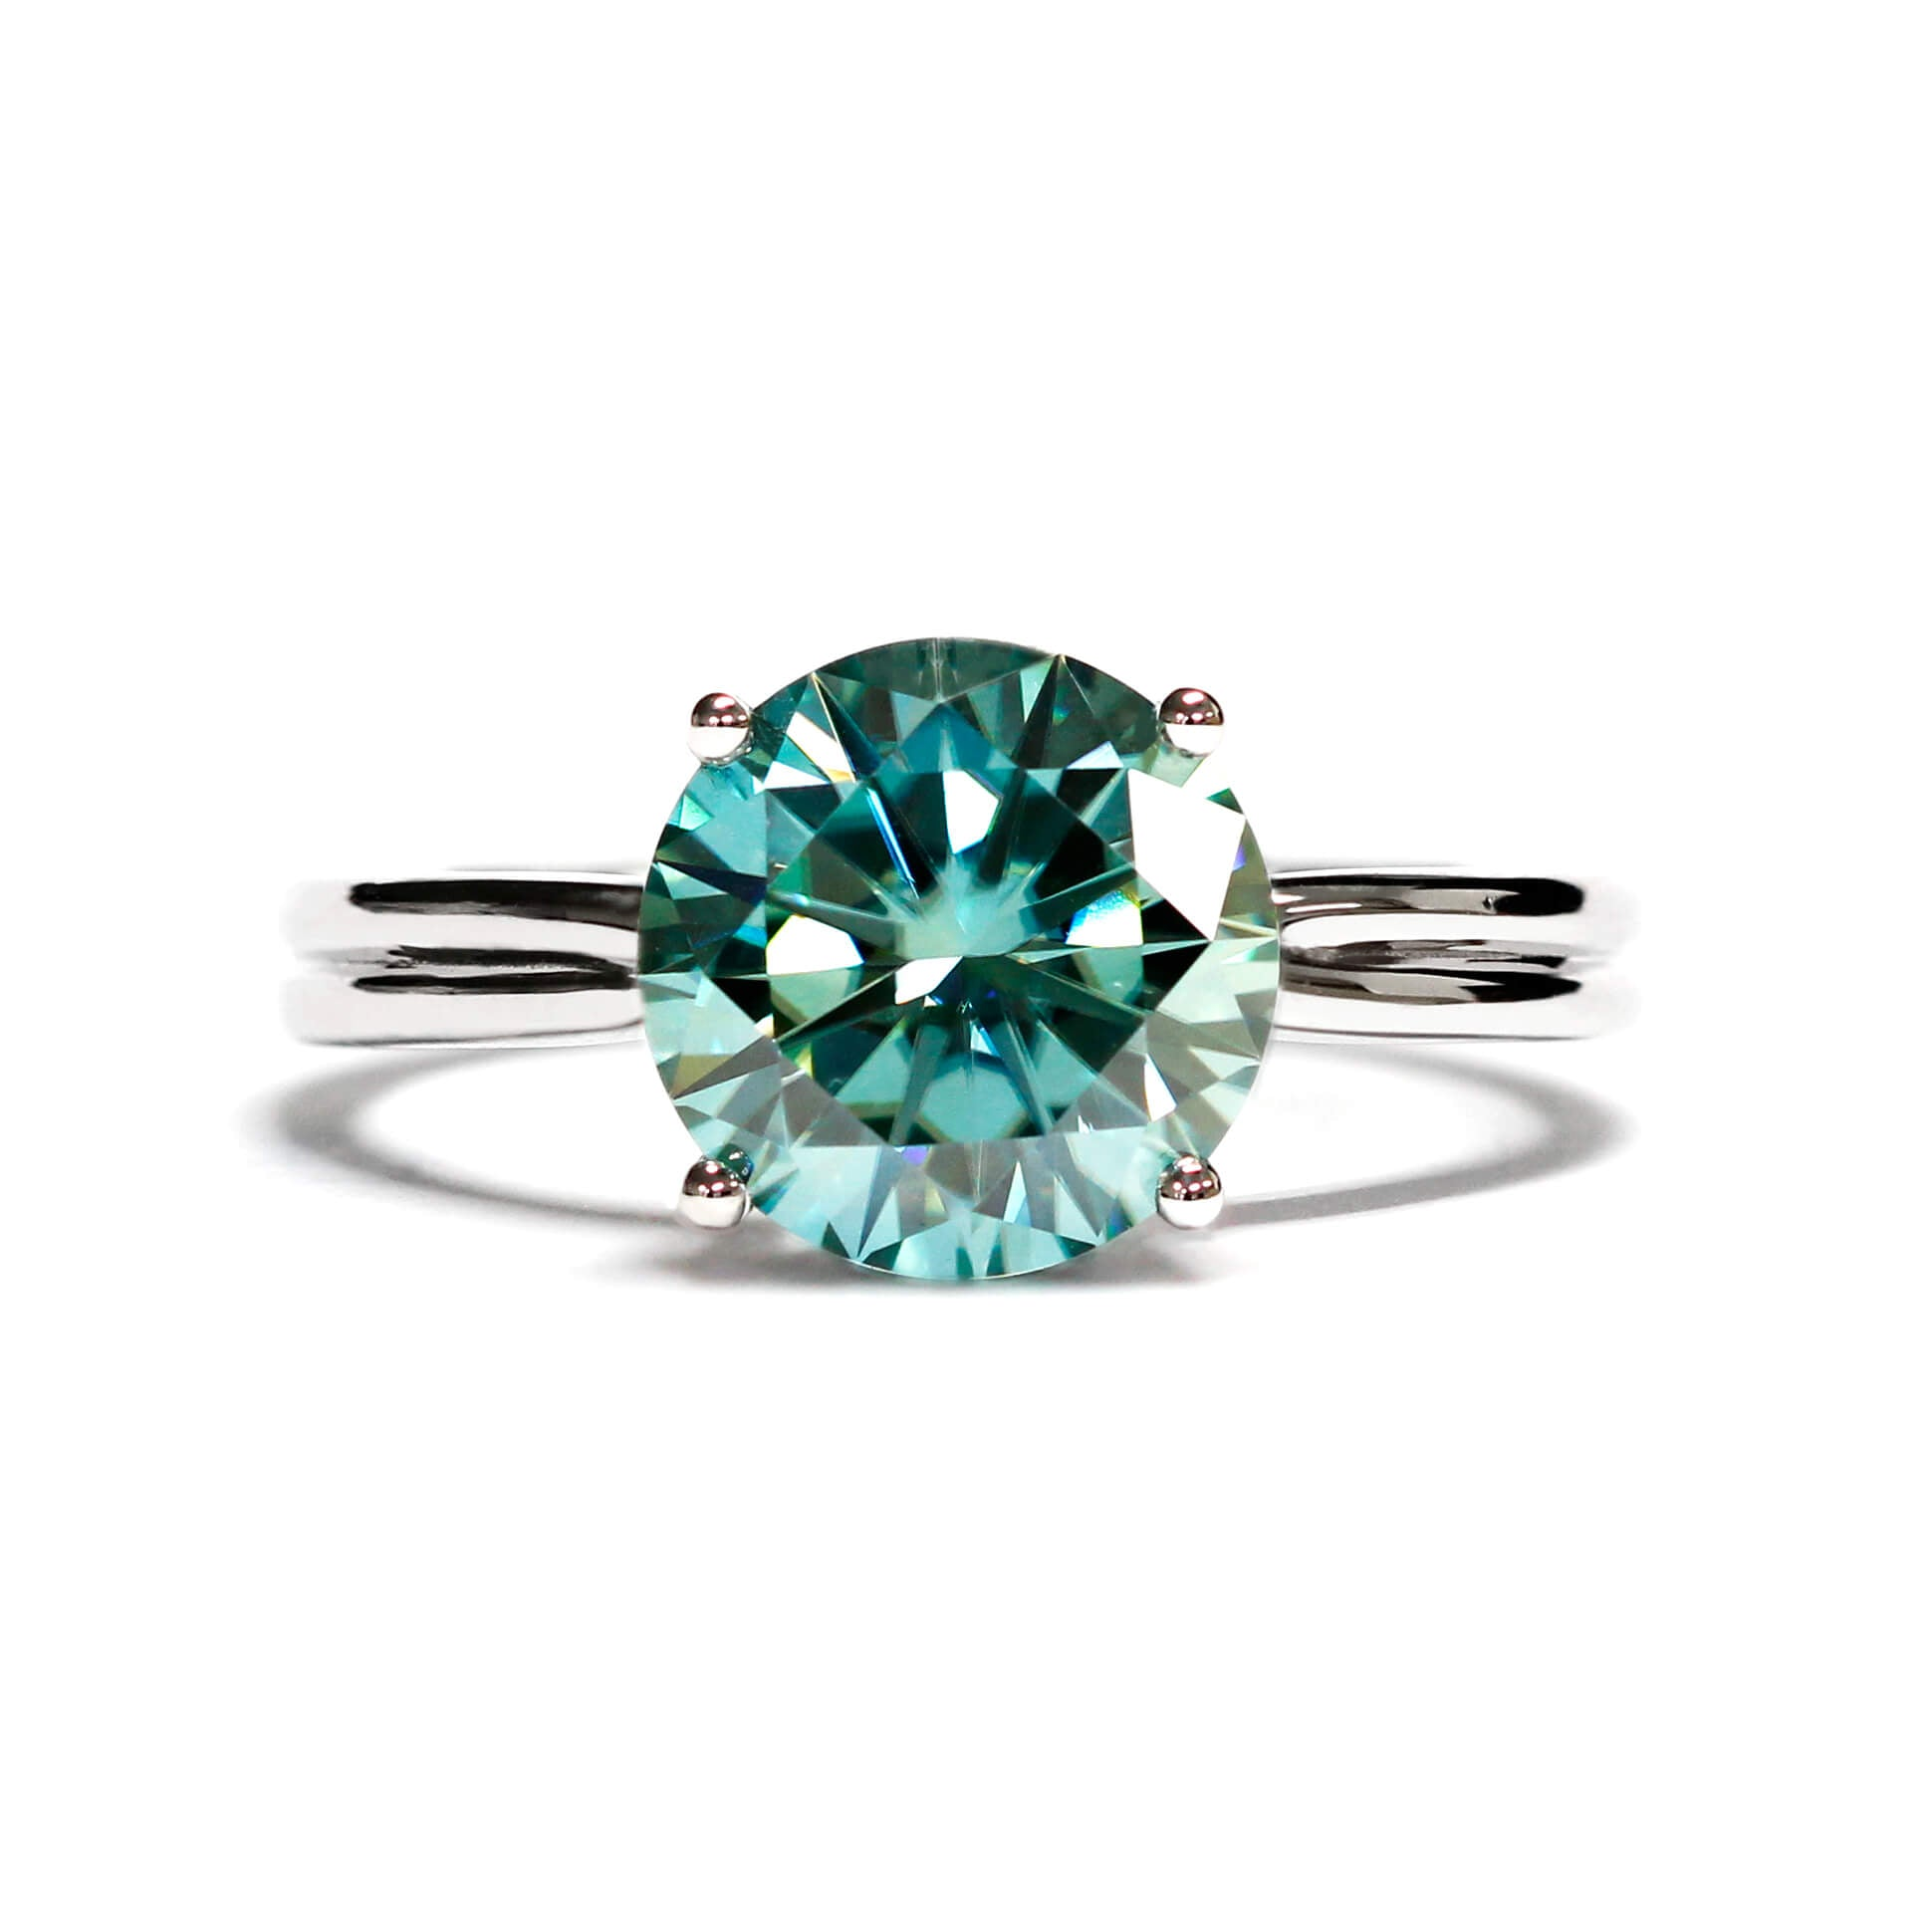 4 Carat Mint Green Moissanite Ring on 18K White Gold